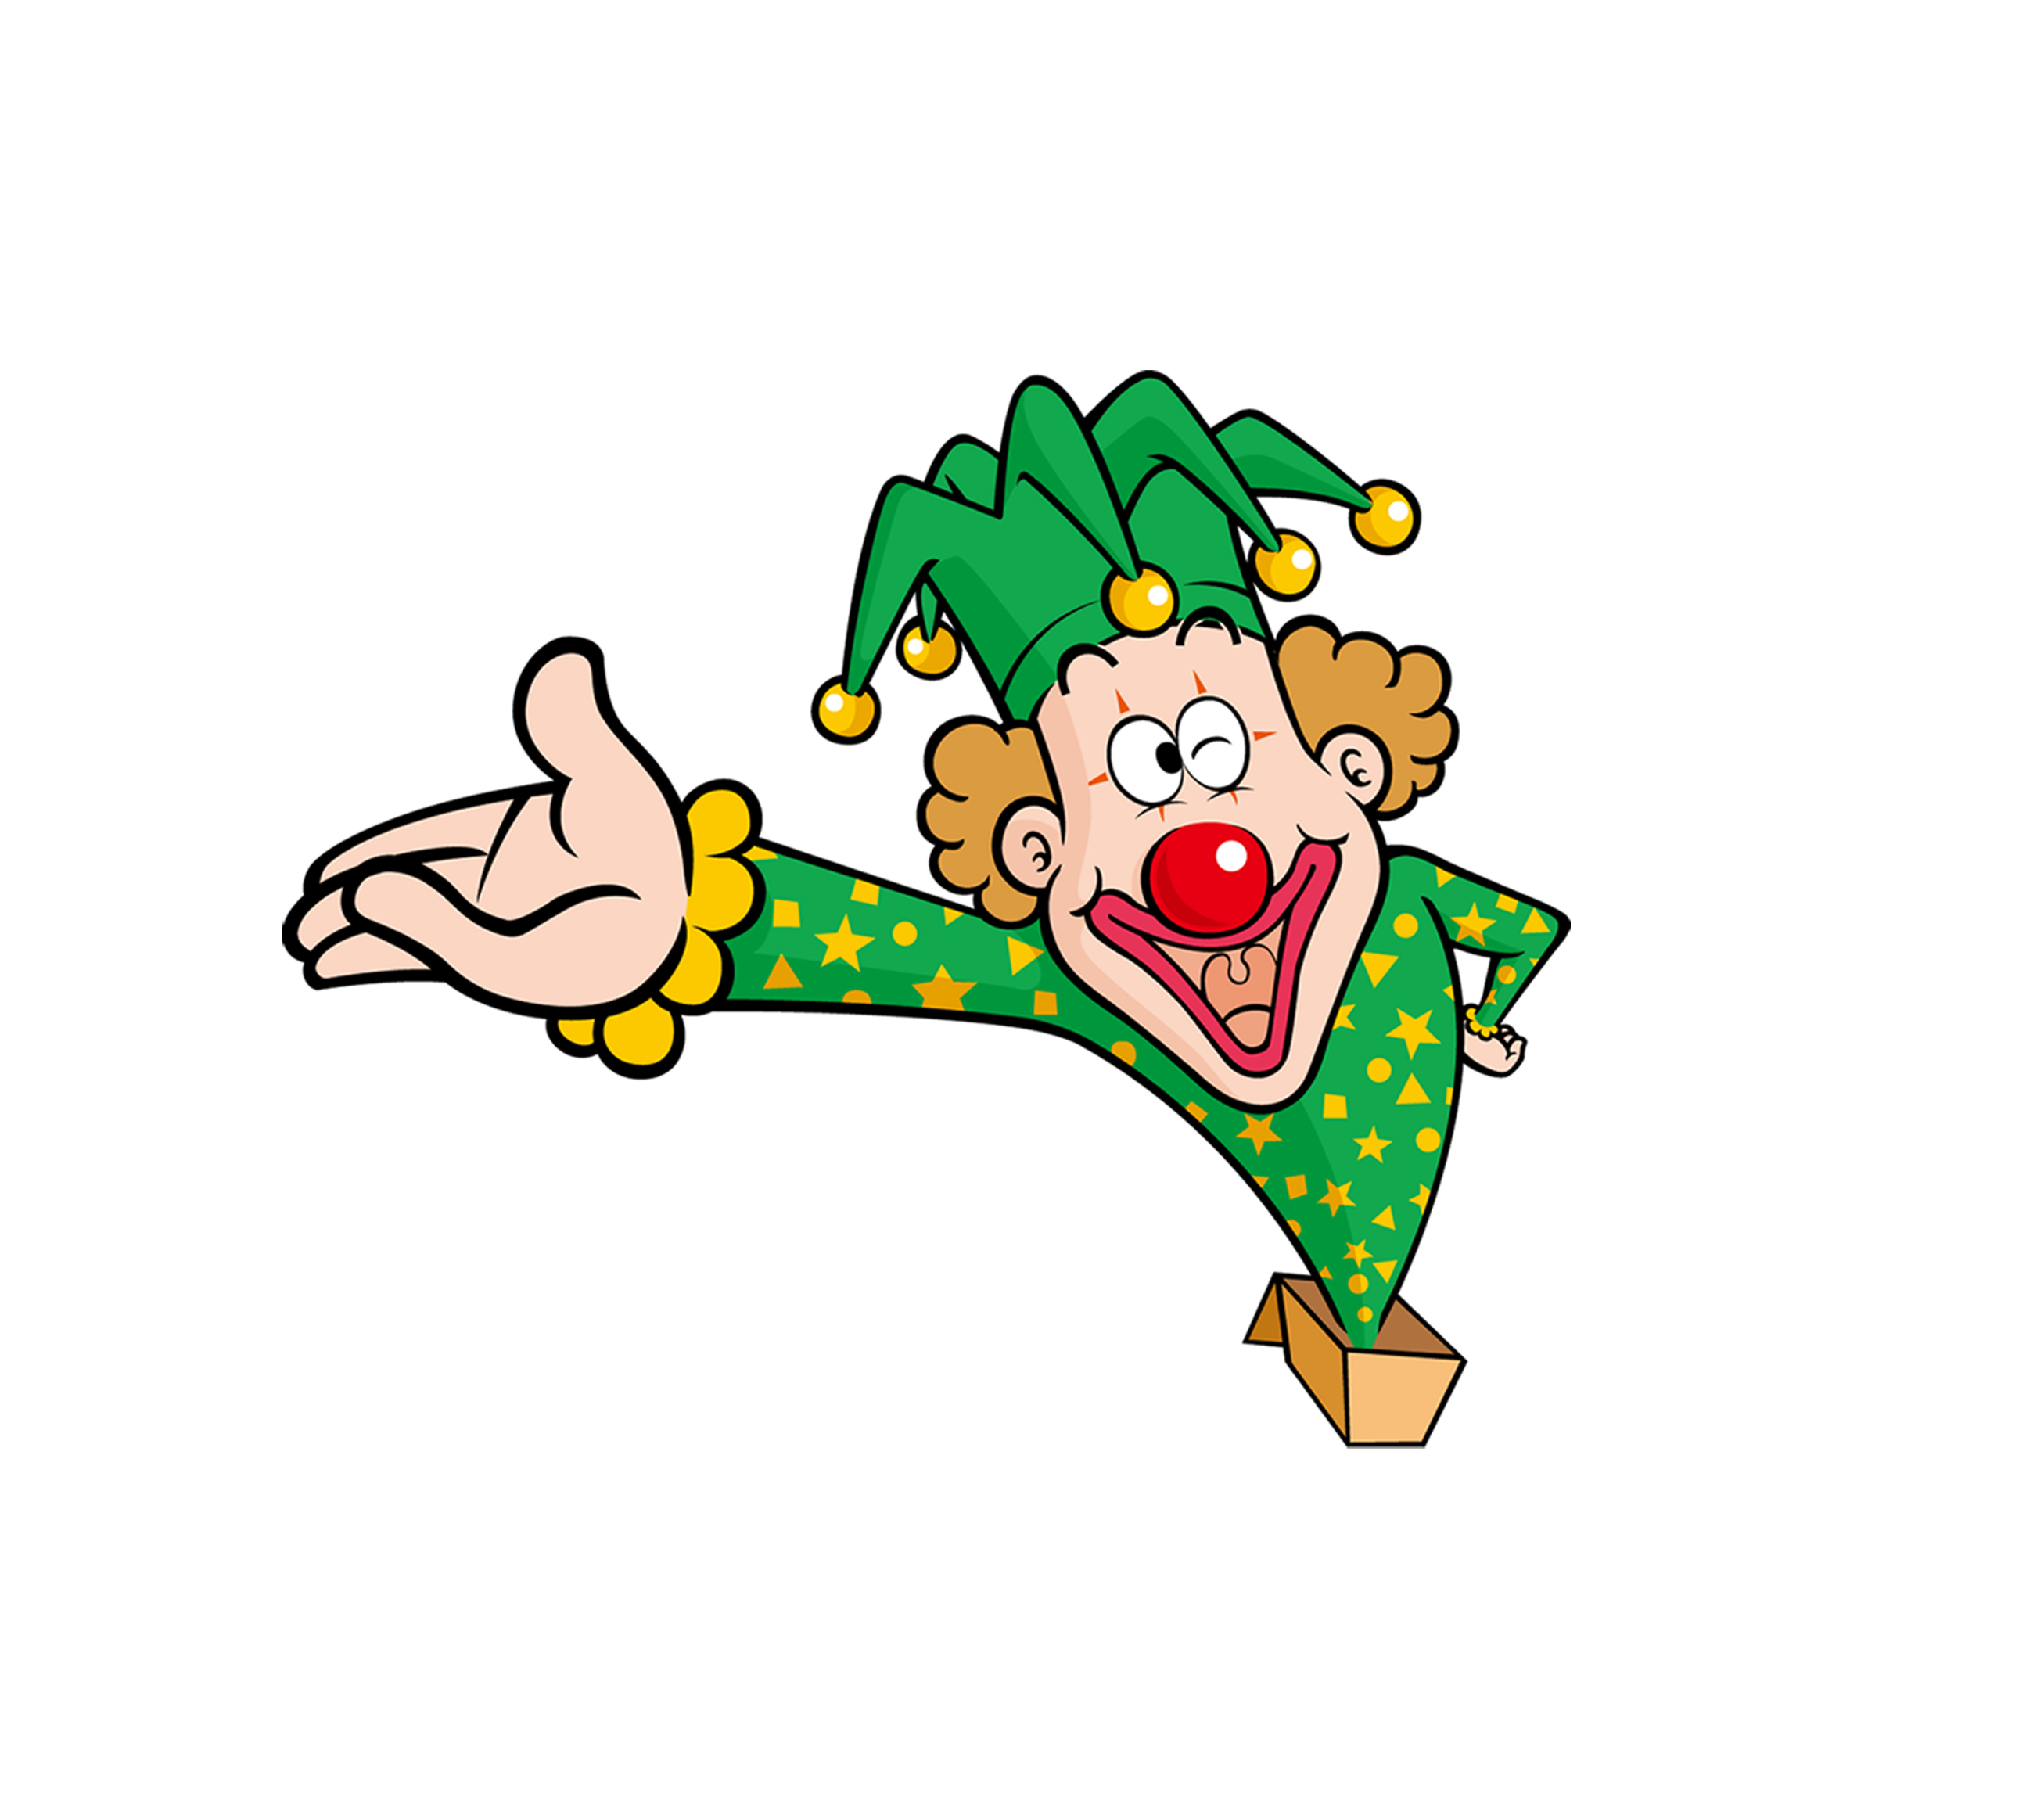 Free clip art april fools day picture free Clown April Fools Day Download Clip art - Cartoon clown 2613*2301 ... picture free